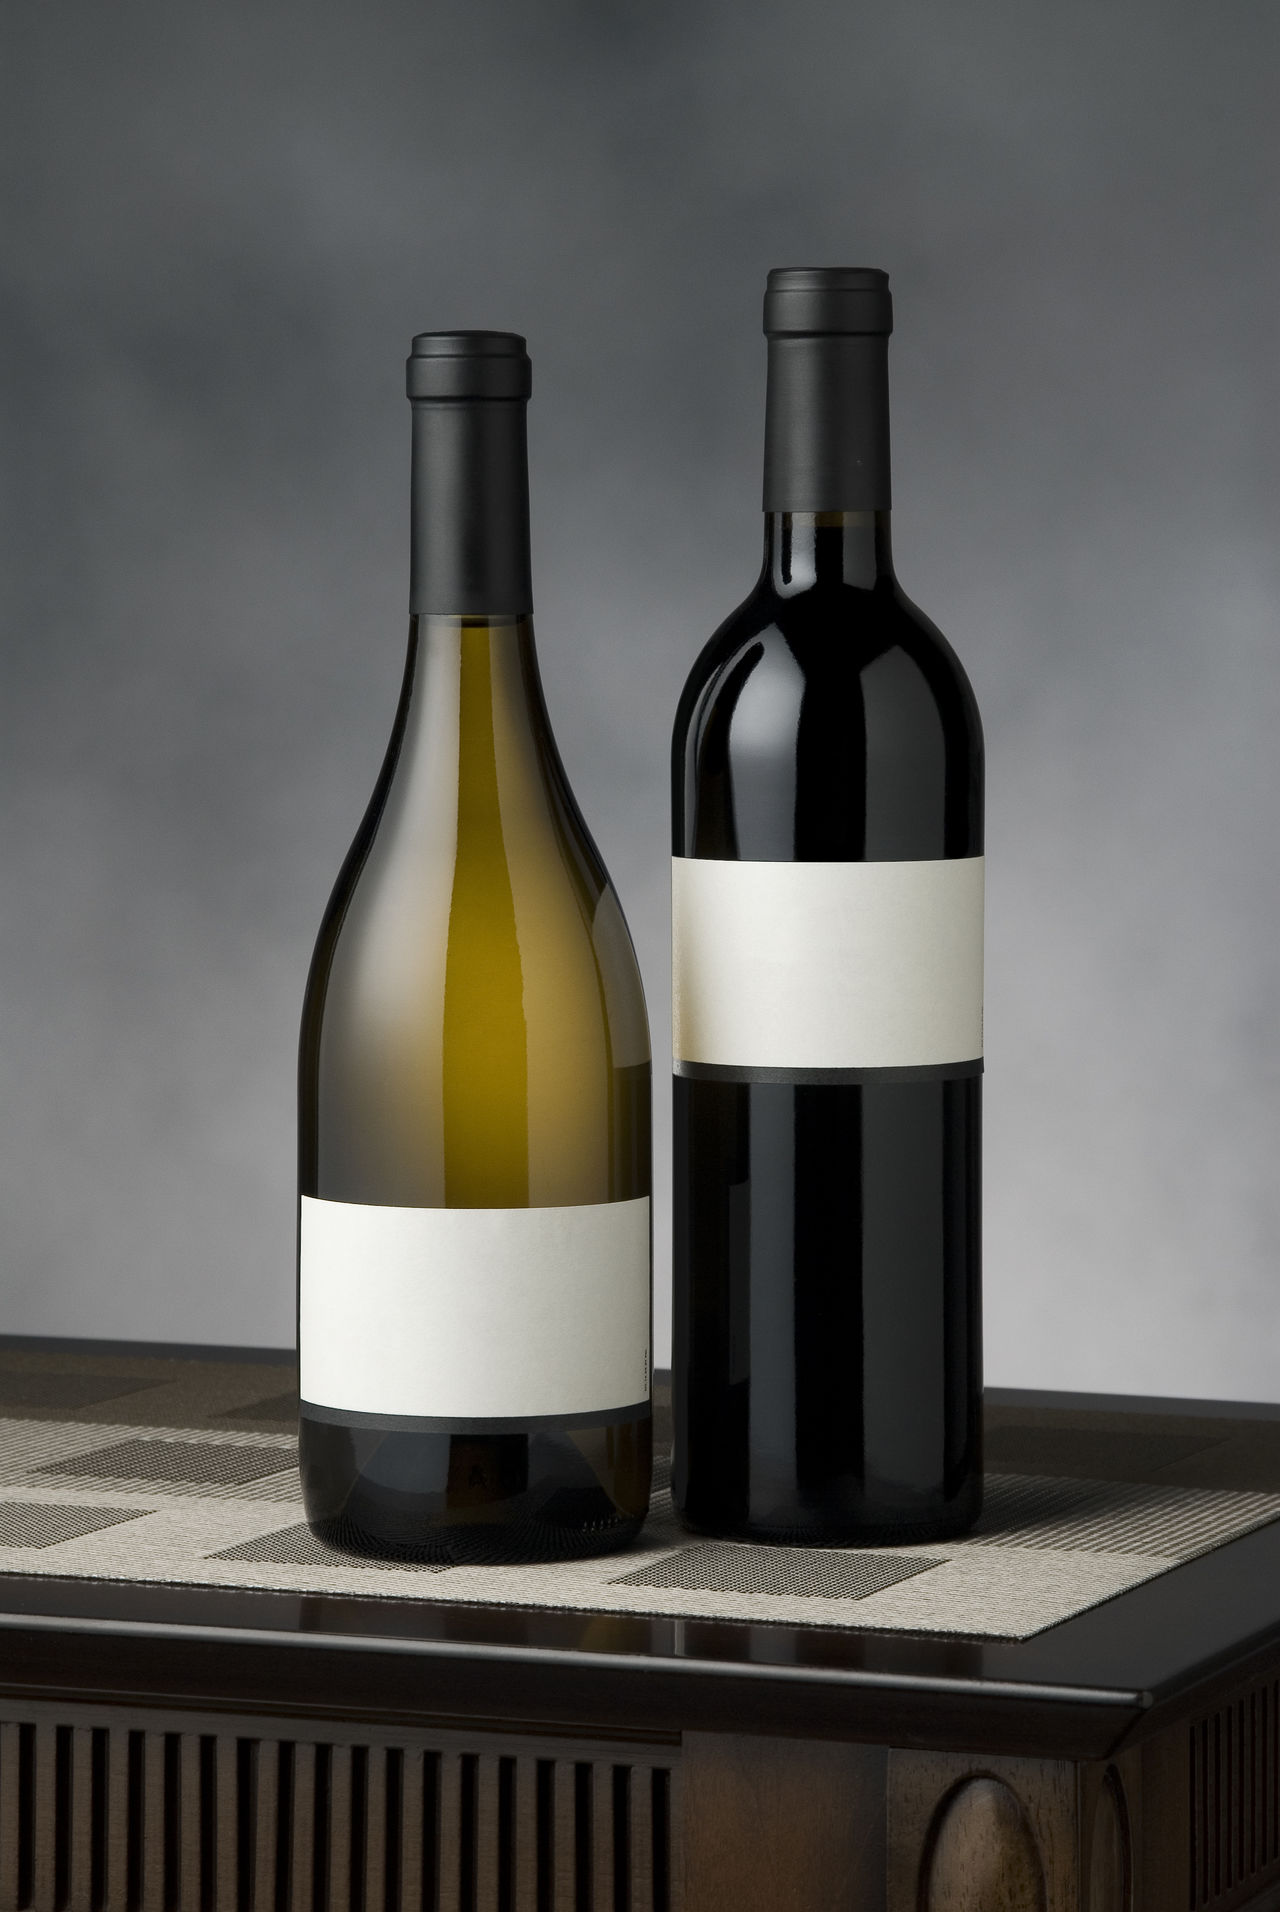 Two wine bottles Alcohol Blank Labels Cabernet_sauvignon Capsule Chardonnay Drink Elegant Labels No People No Vintage Place Mat Side By Side Still Life Studio Shot Table Top Vertical Composition Wine Wine Bottles Wines Wooden